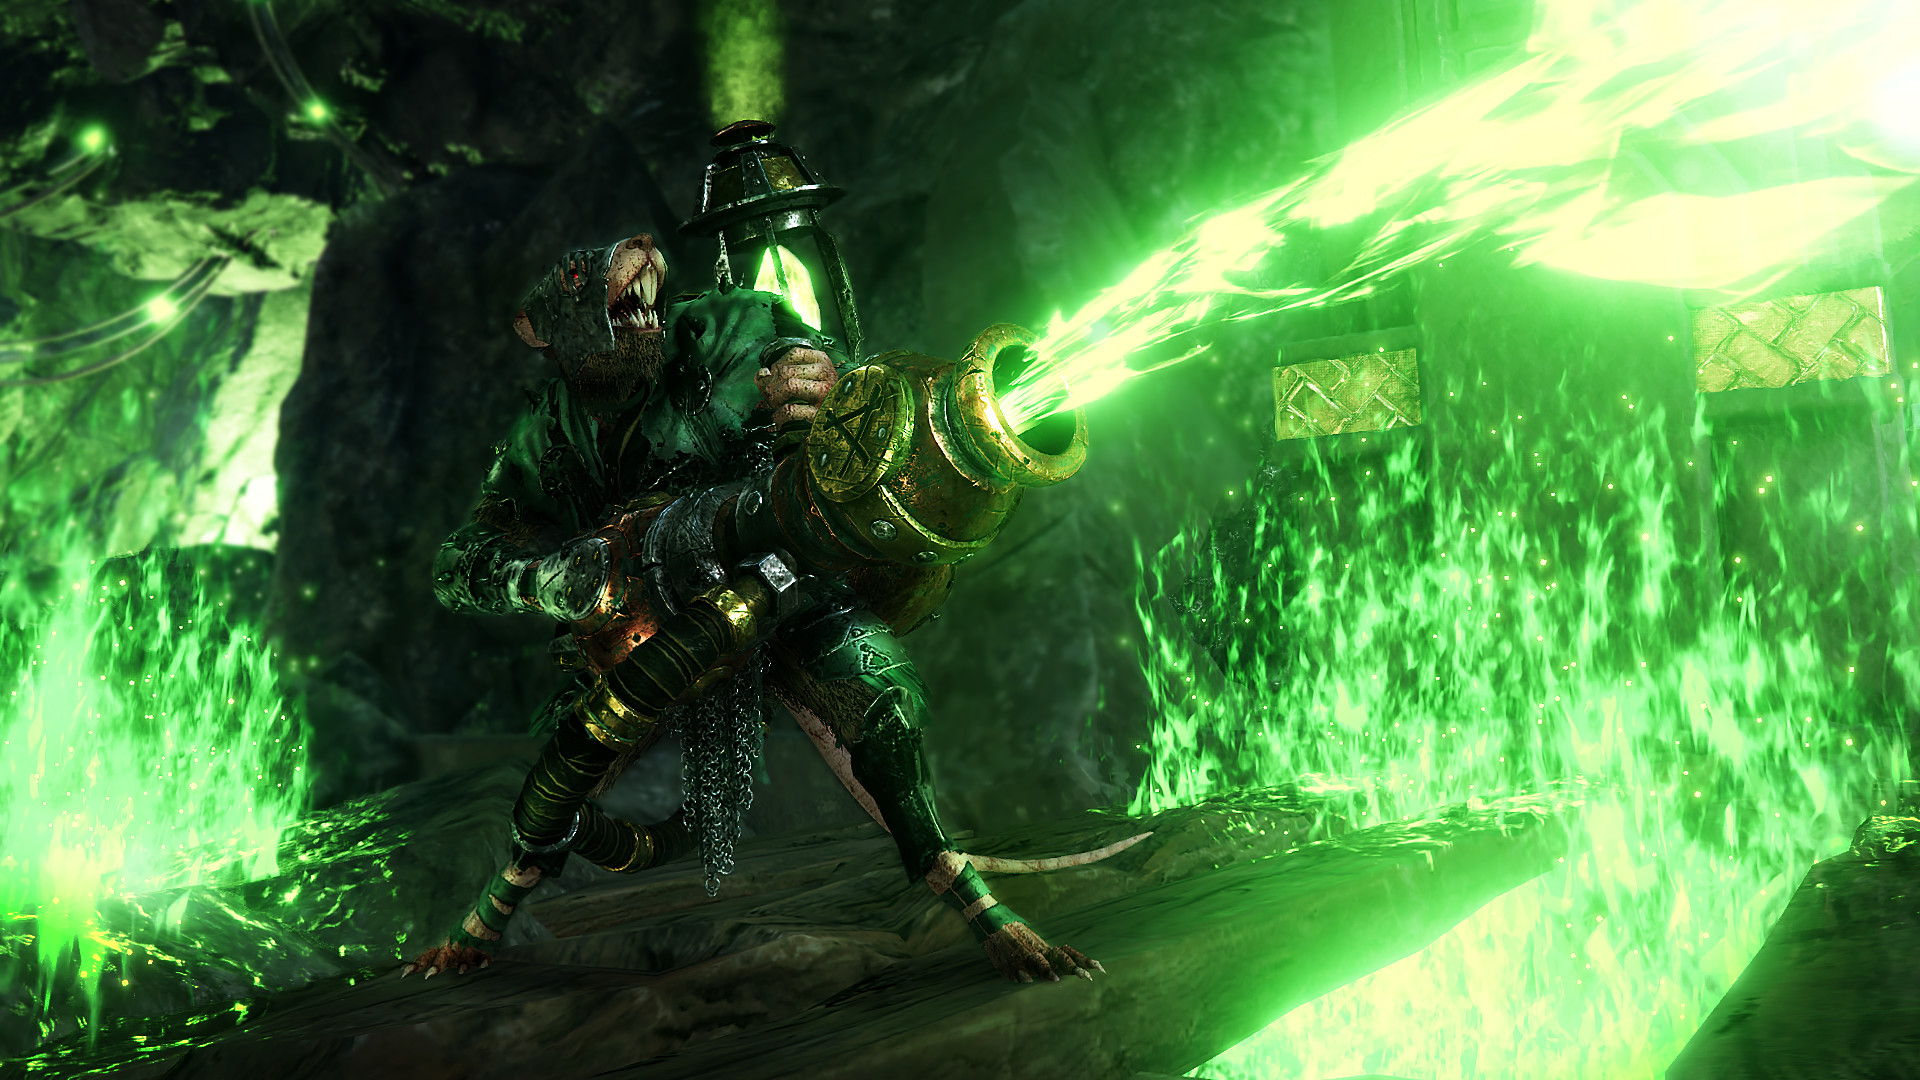 With new enemies, new loot and mod support, Warhammer: Vermintide 2